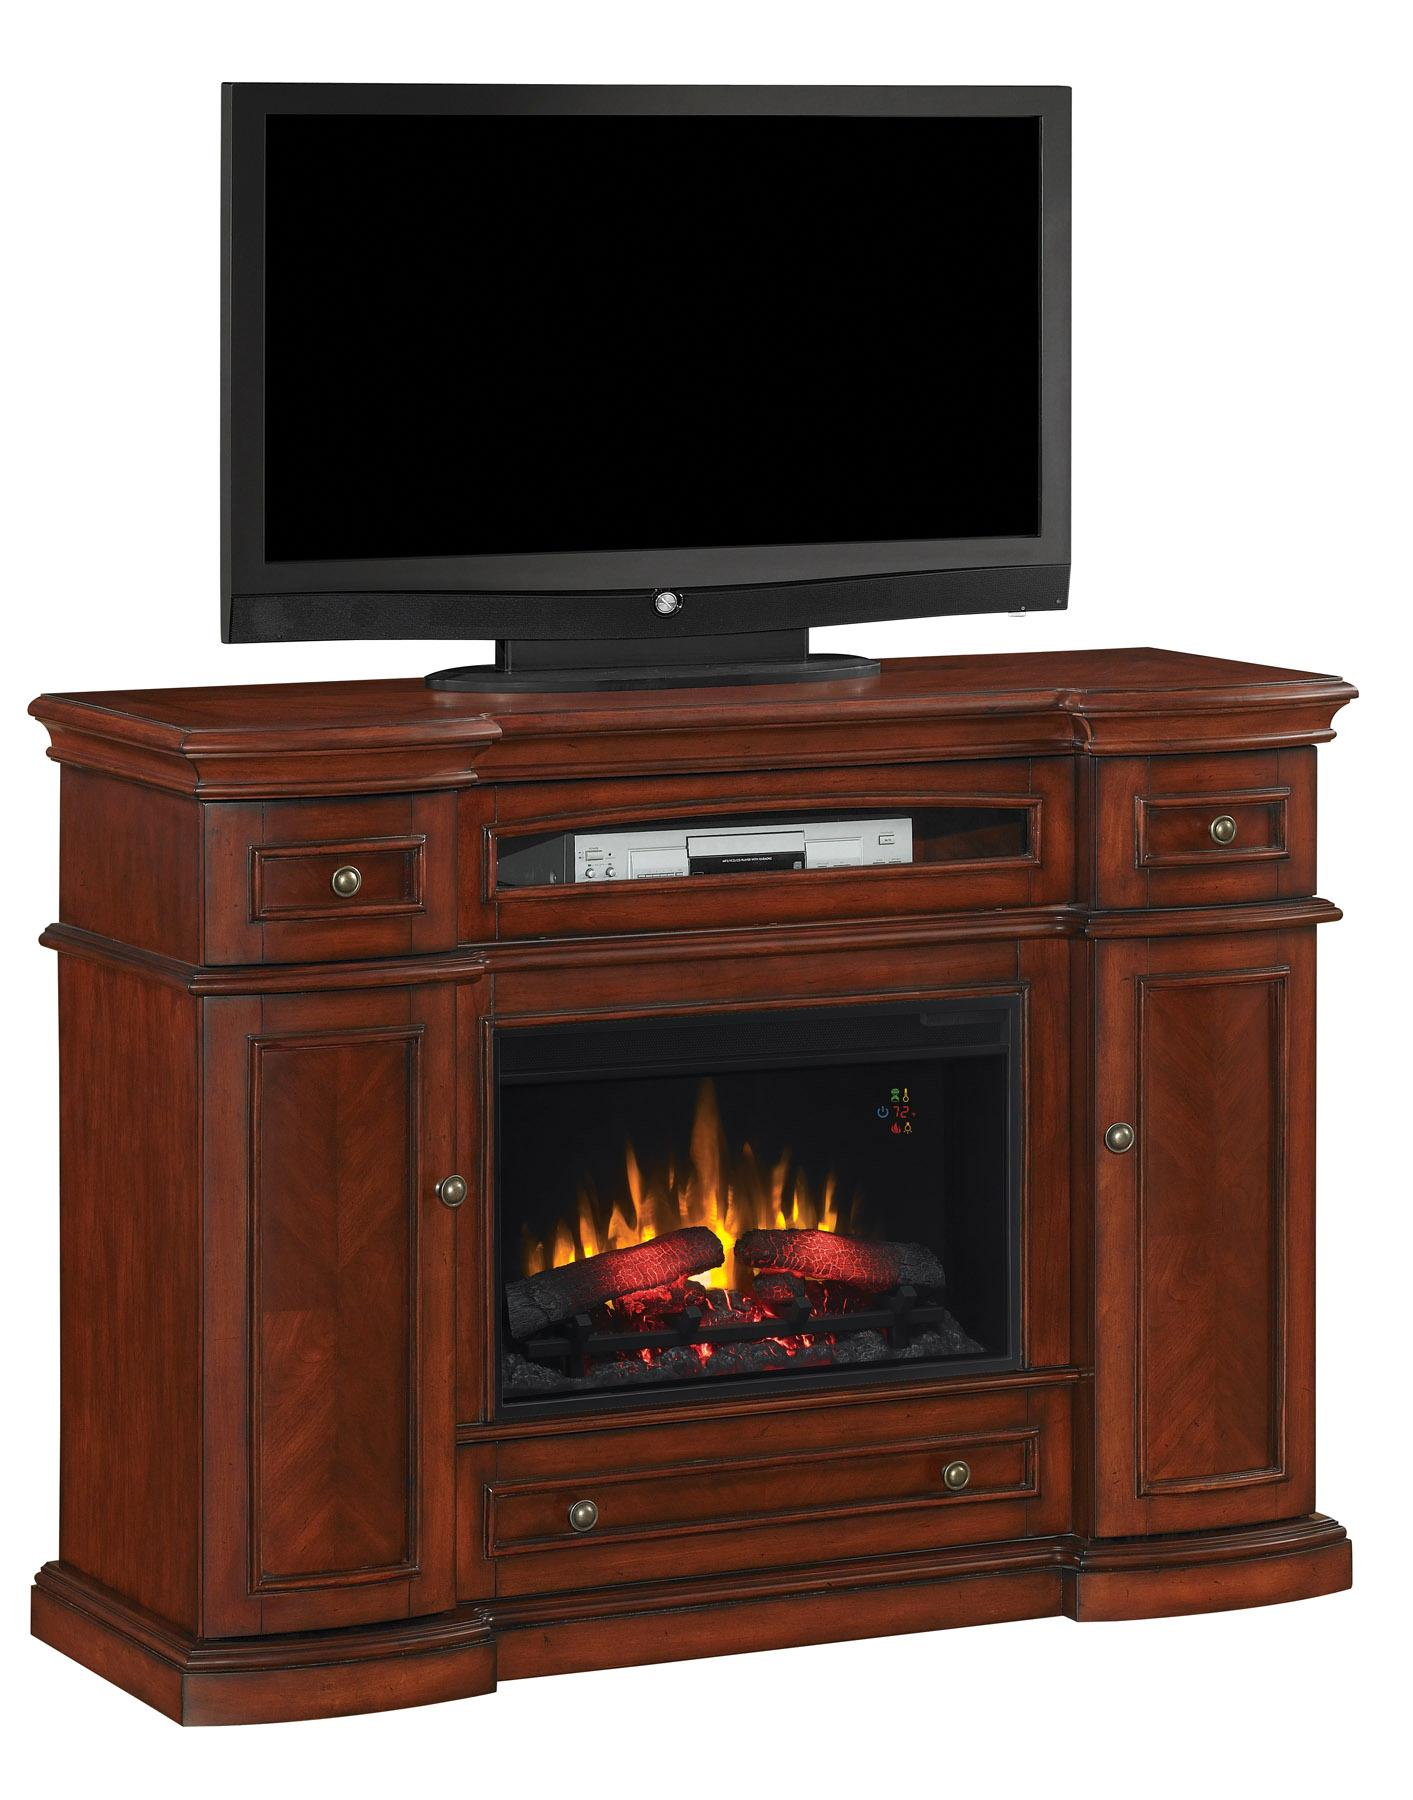 inch wall fireplaces fireplace alluravision deep napoleon mount electric